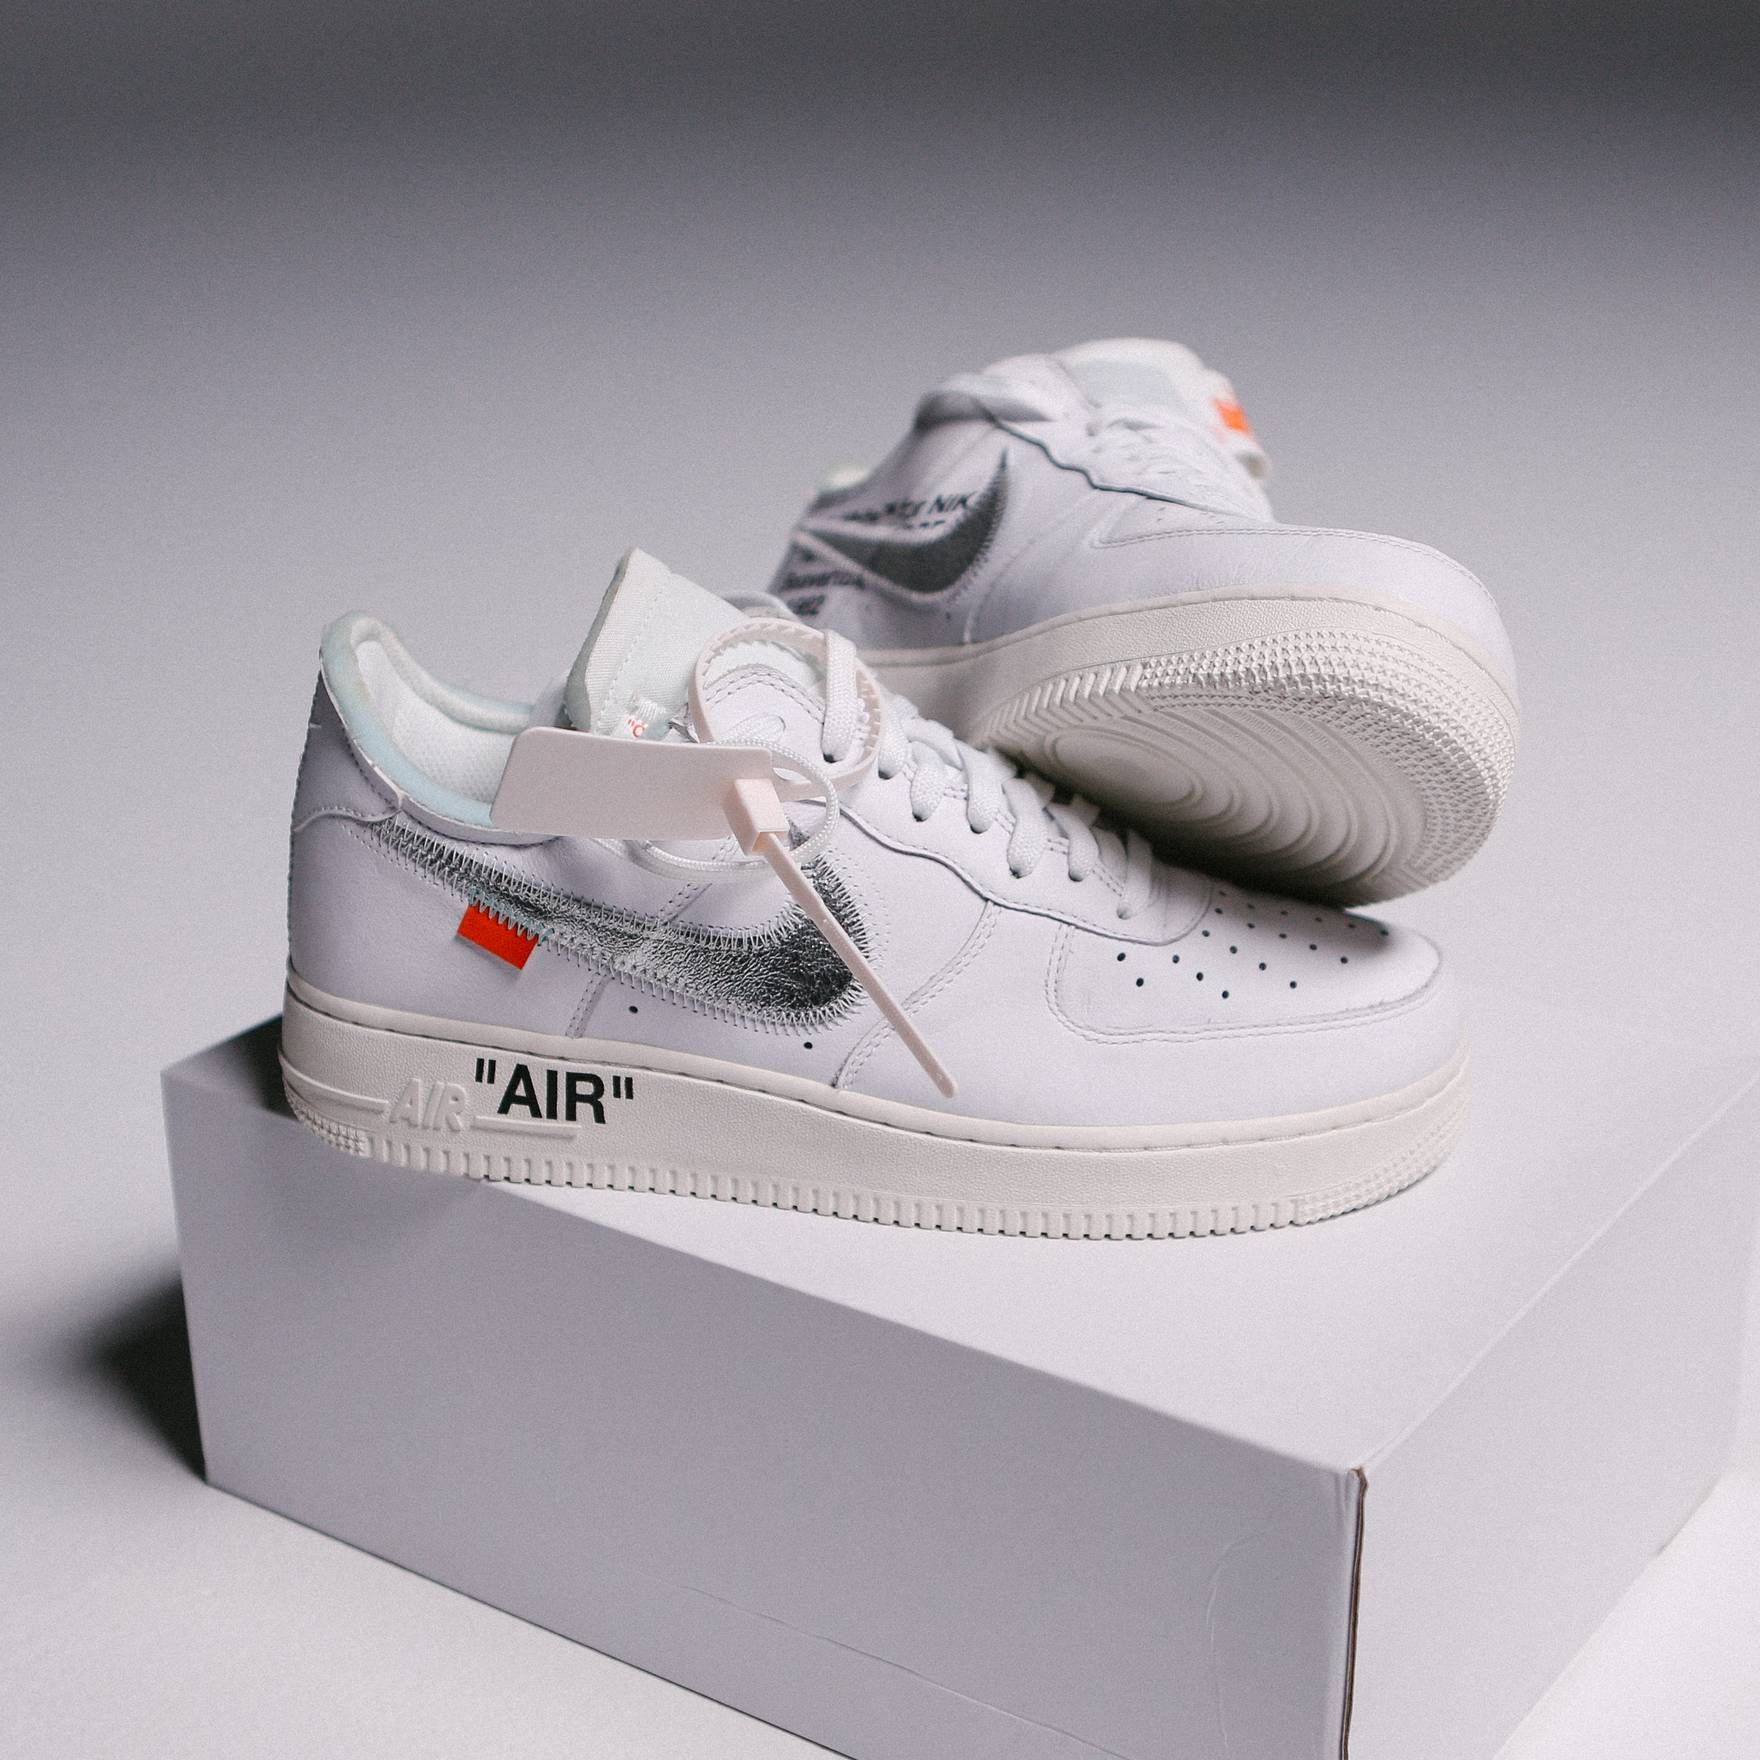 2air force 1 42